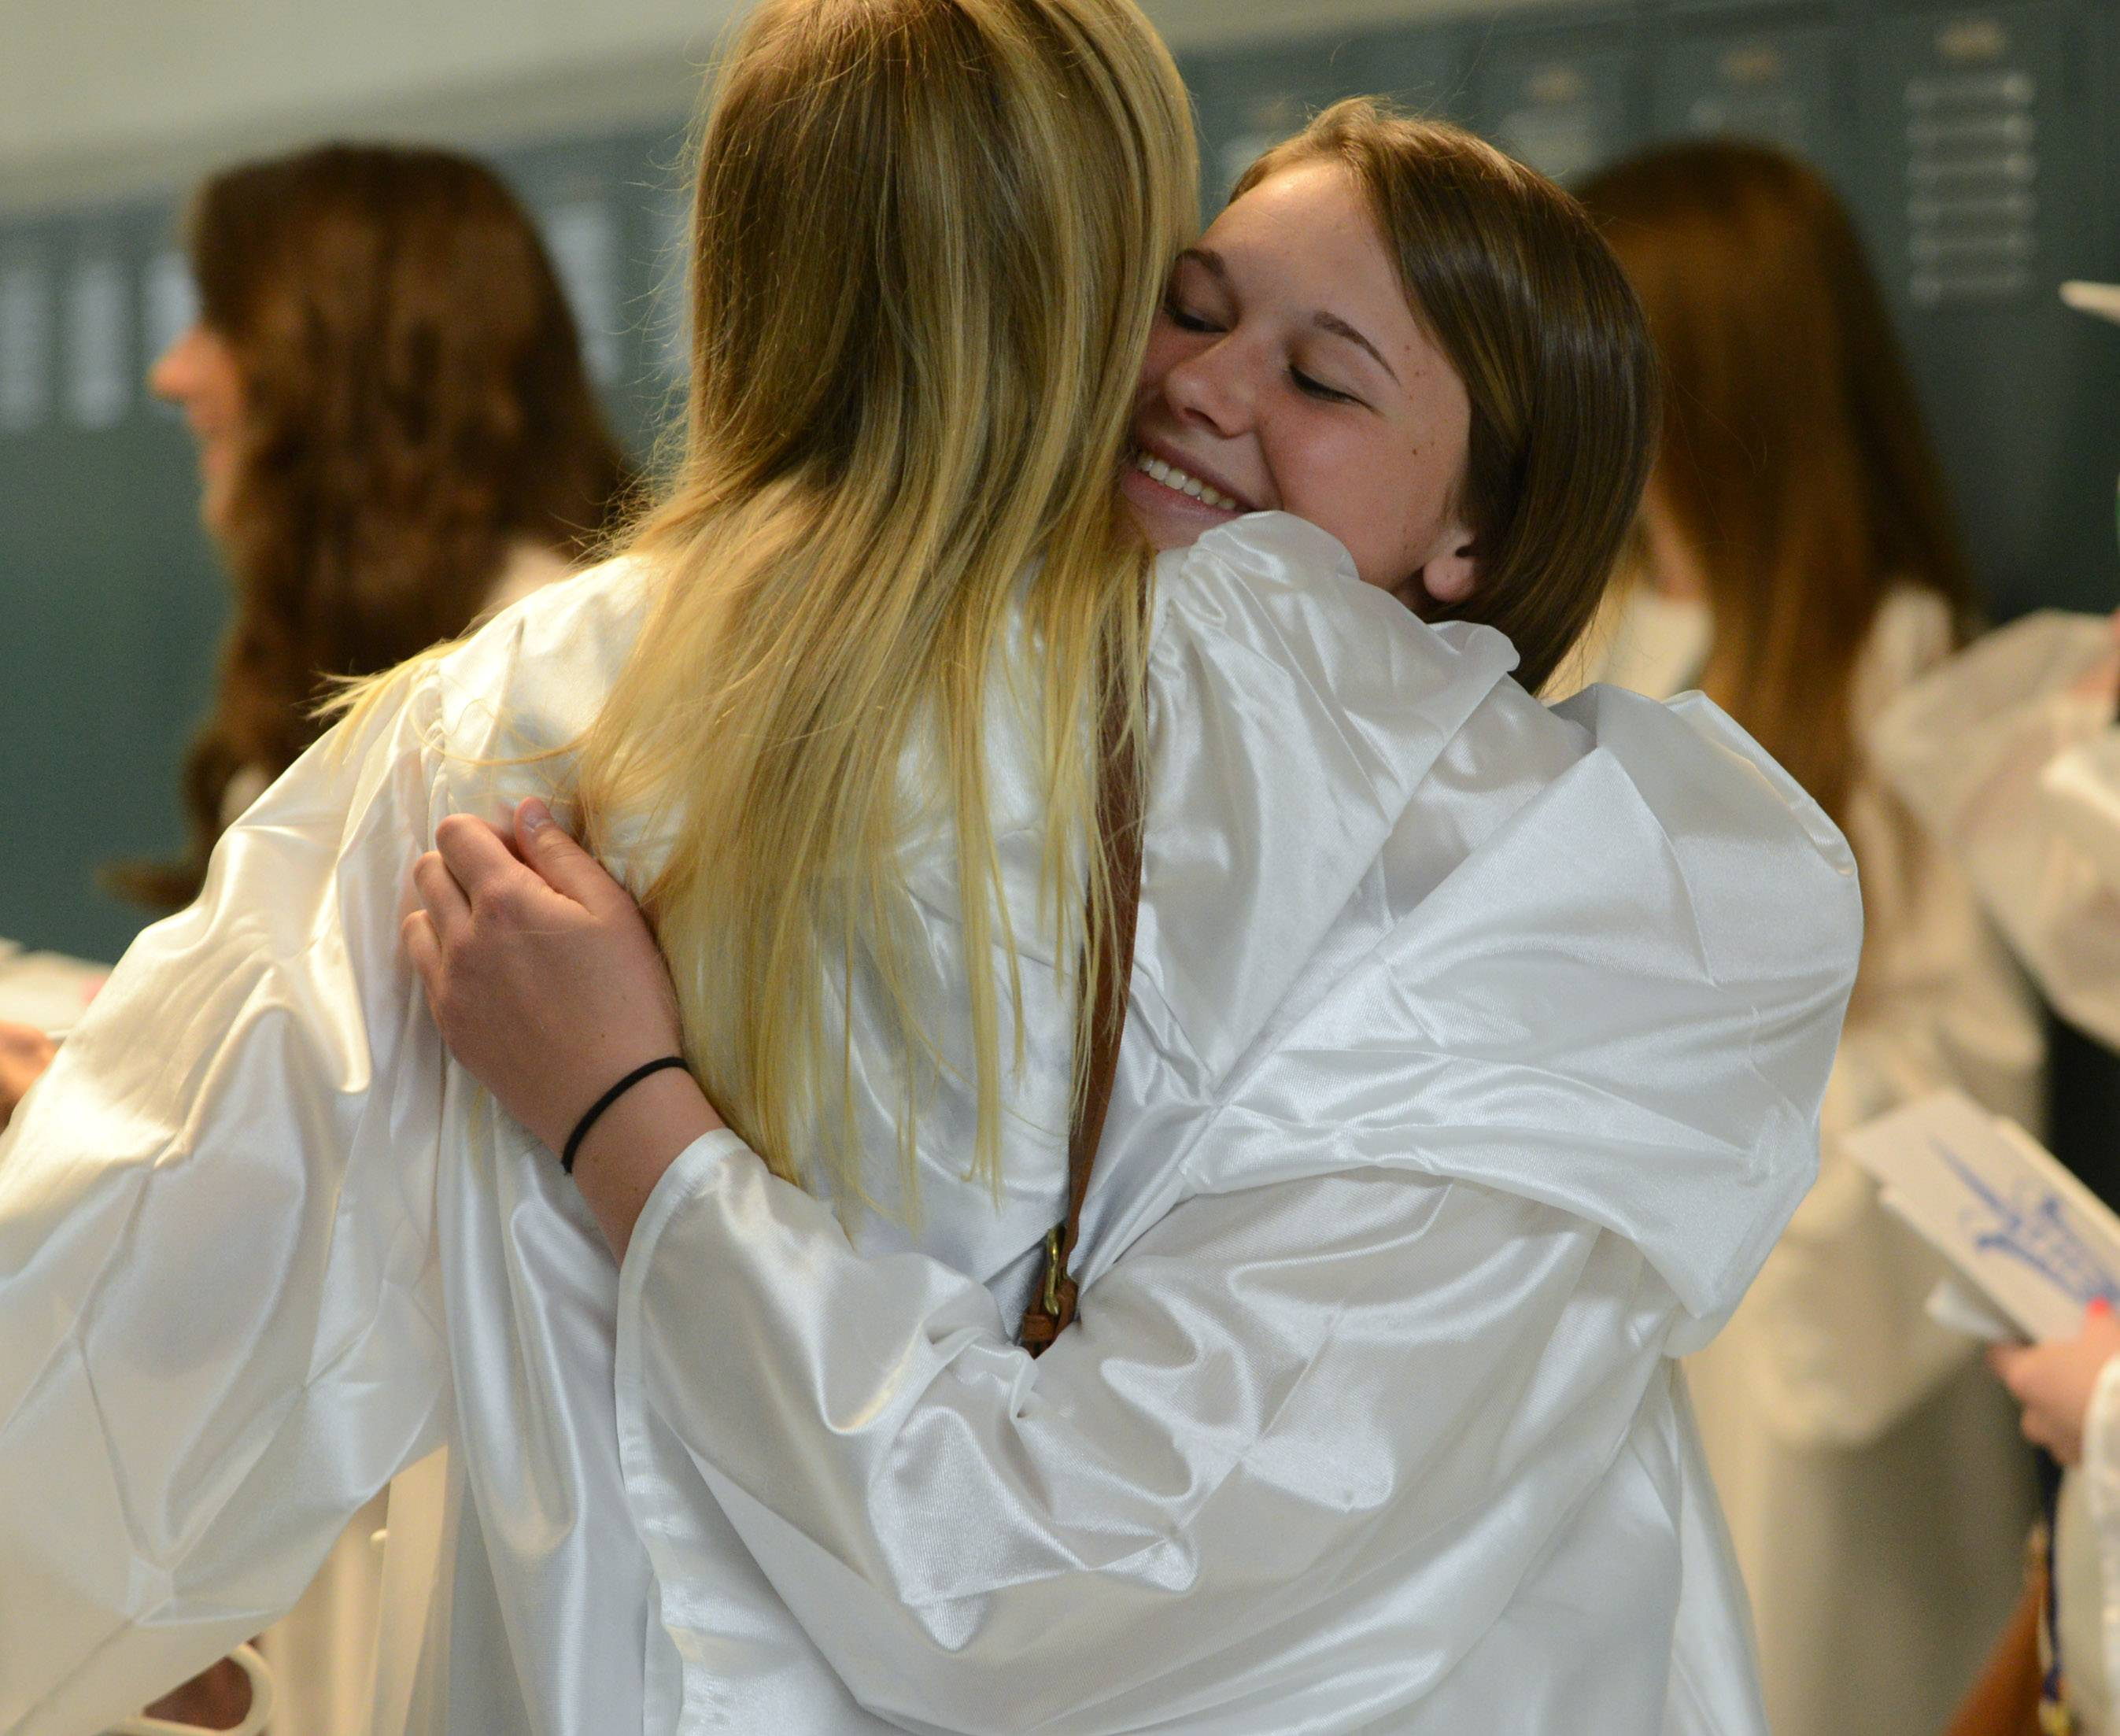 Grayslake Central High School's  Jamie Brew, right, shares a hug with Lexi Beckman before the start of Sunday's graduation ceremony at the school.